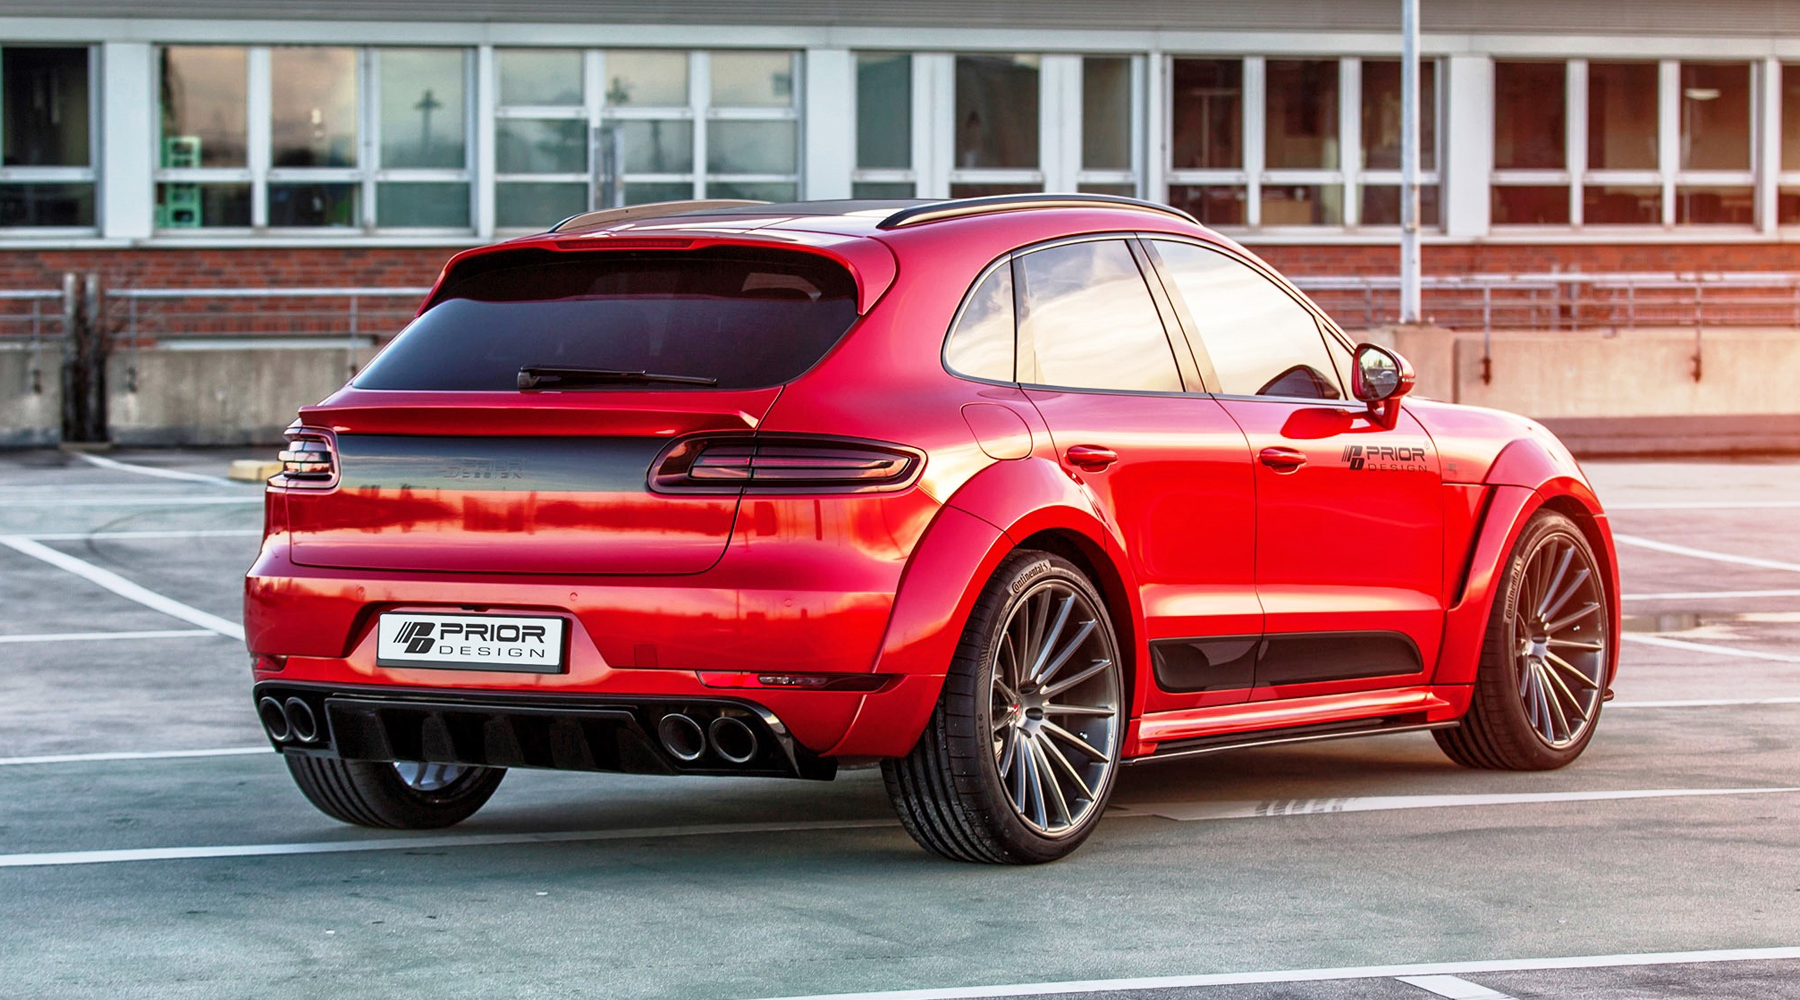 Prior Design Porsche Macan PD600M